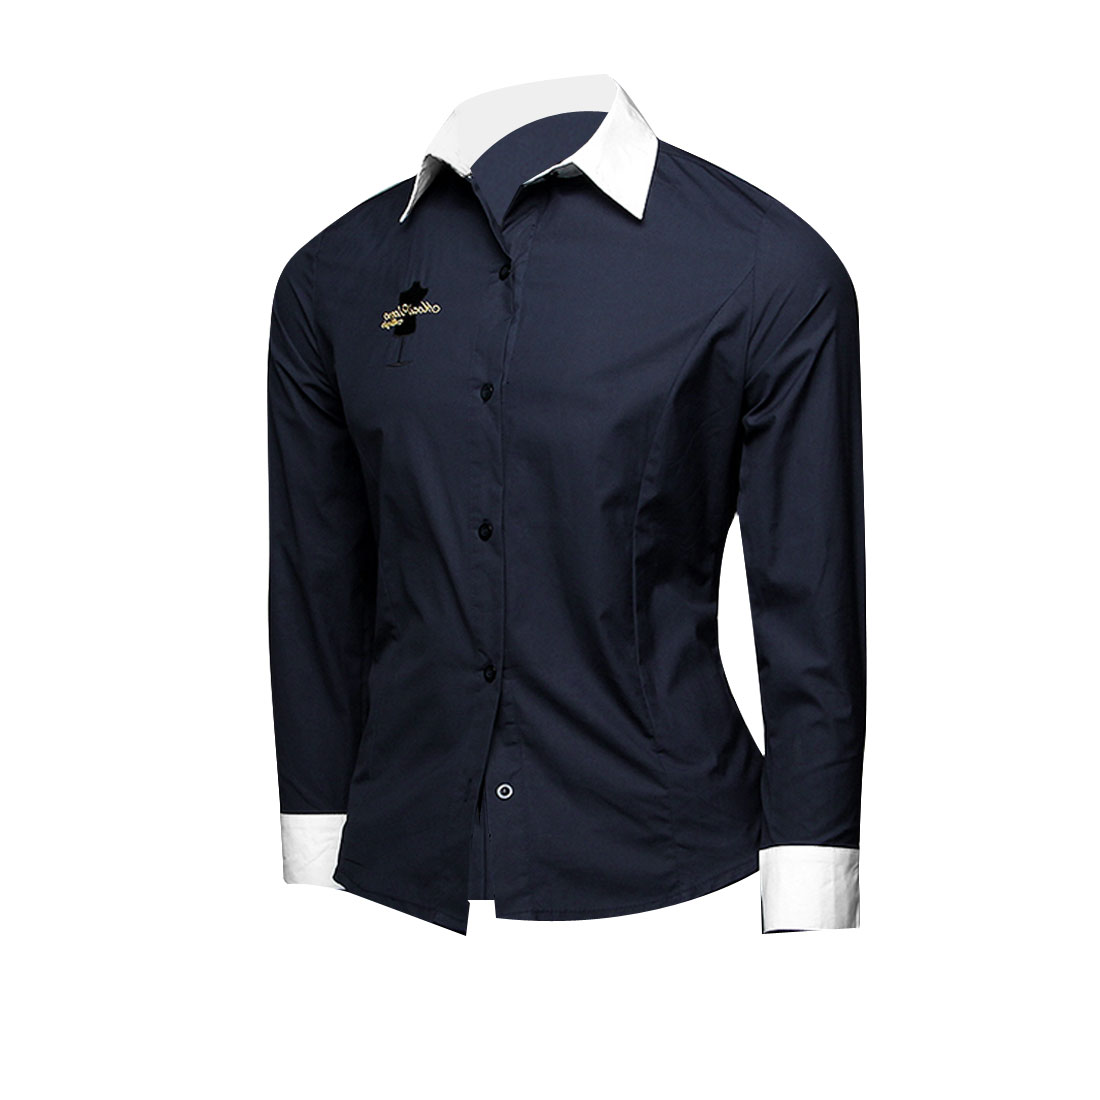 Men Point Collar Embroidery Detail Shirt Navy Blue White M